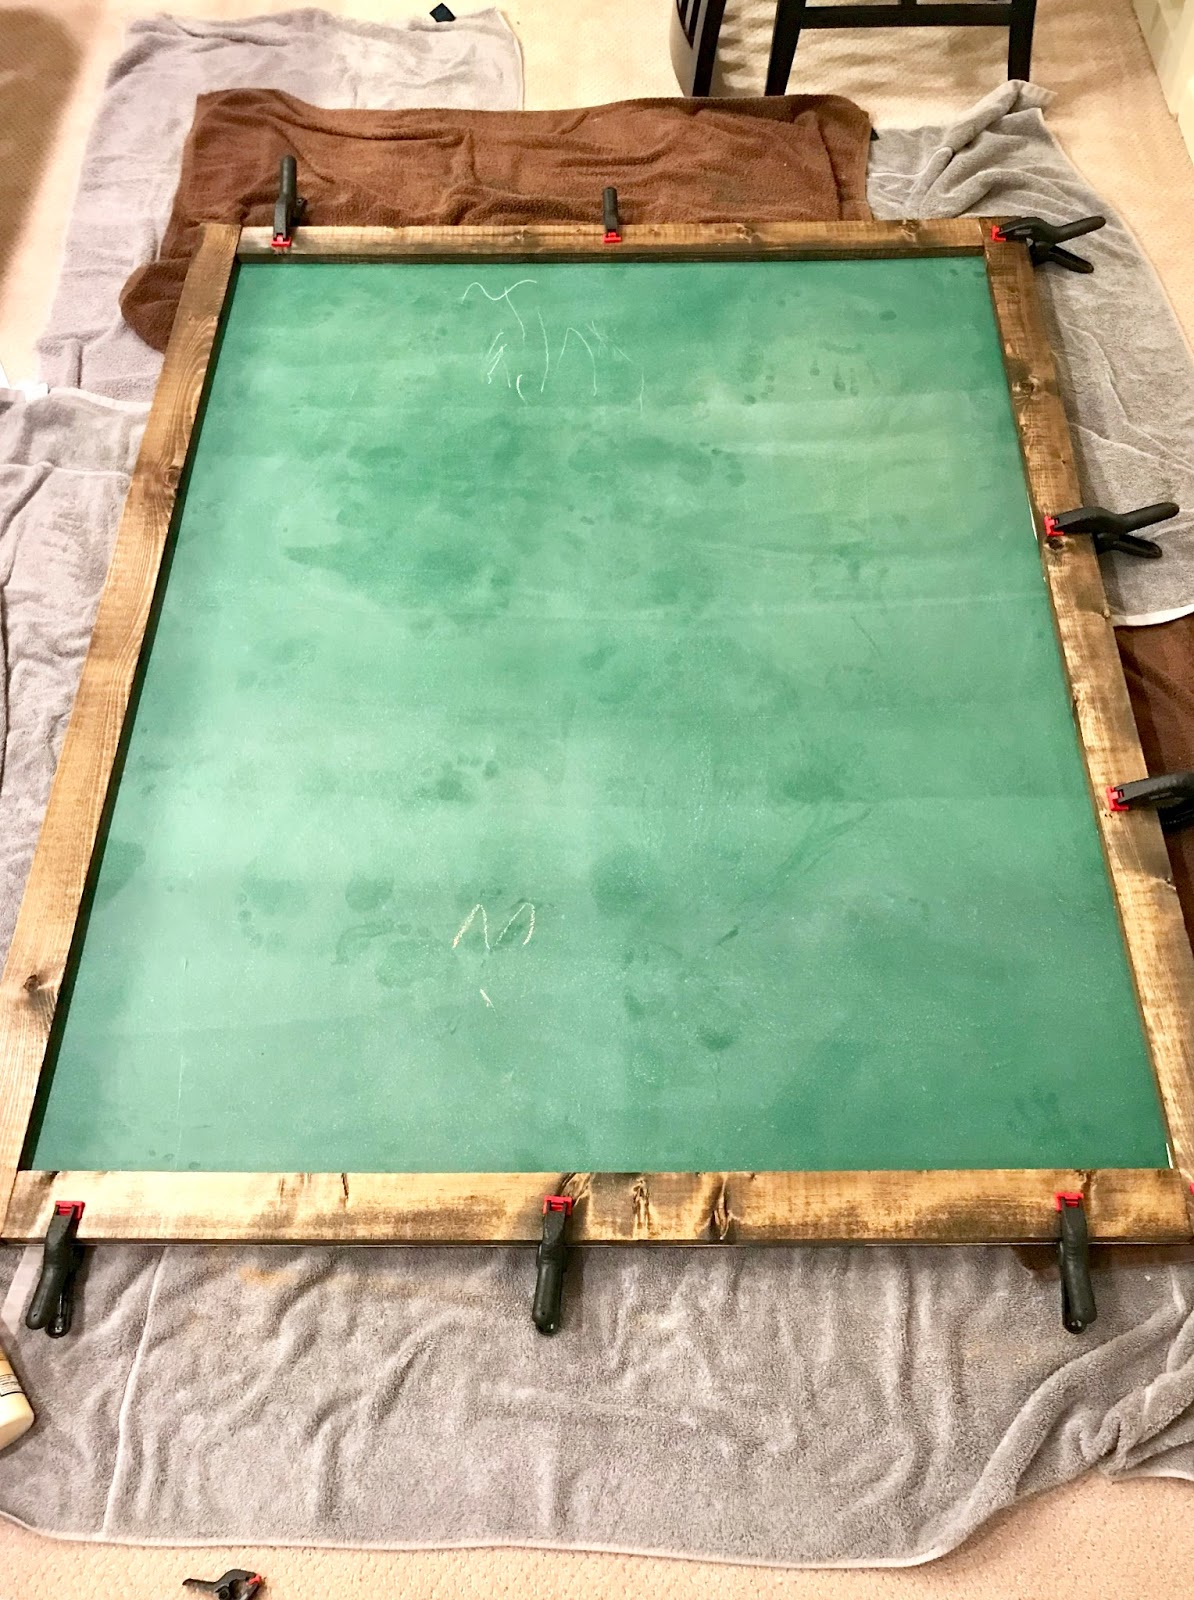 DIY Oversized Chalkboard RR At Home - Pool table chalk board